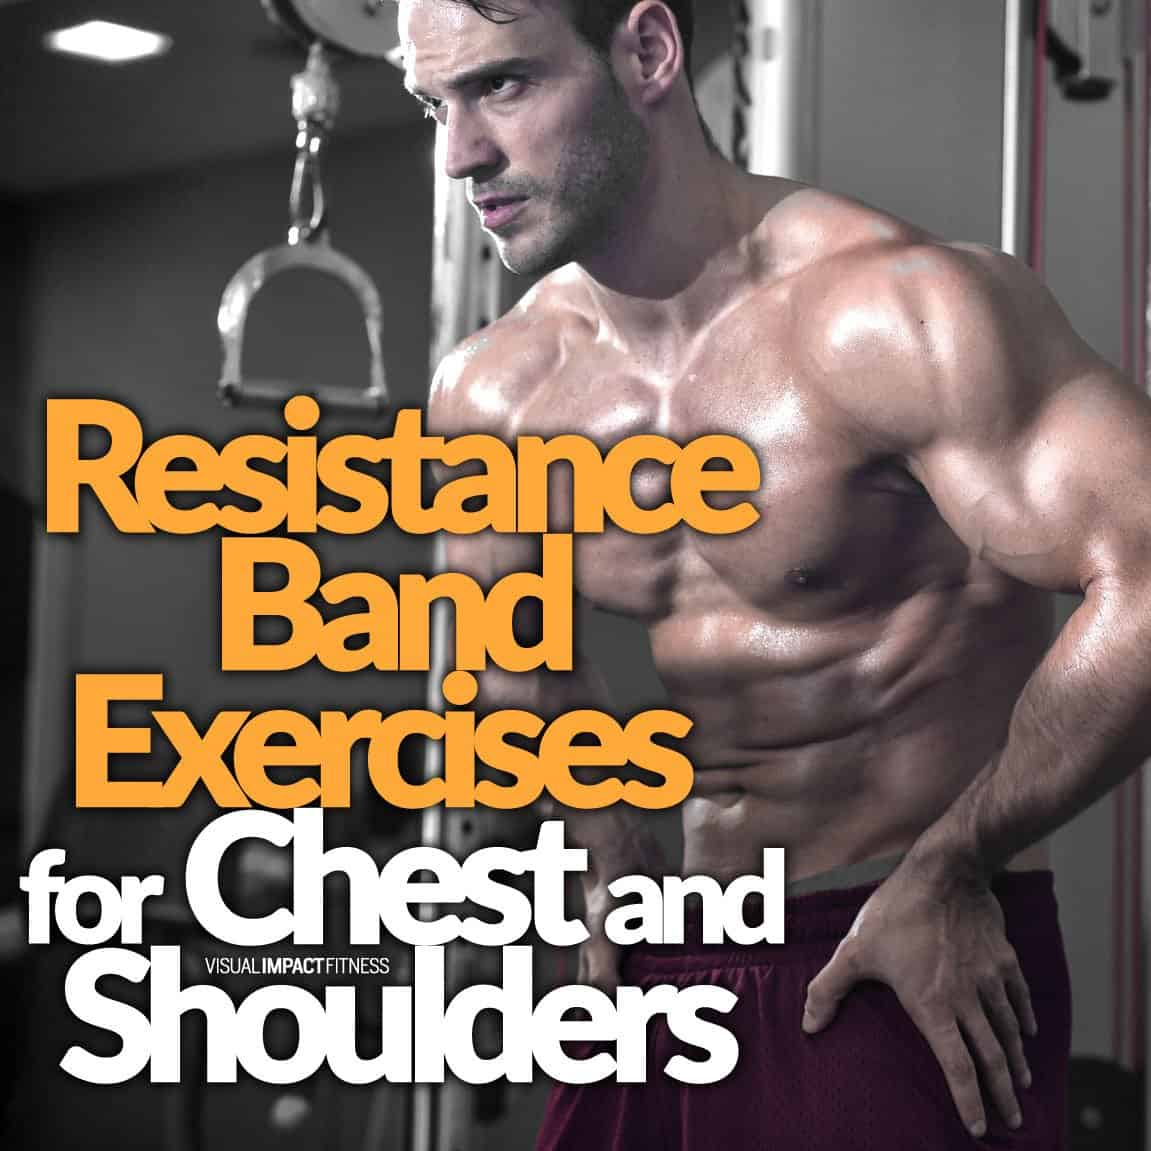 Resistance Band Exercises For Chest Shoulders